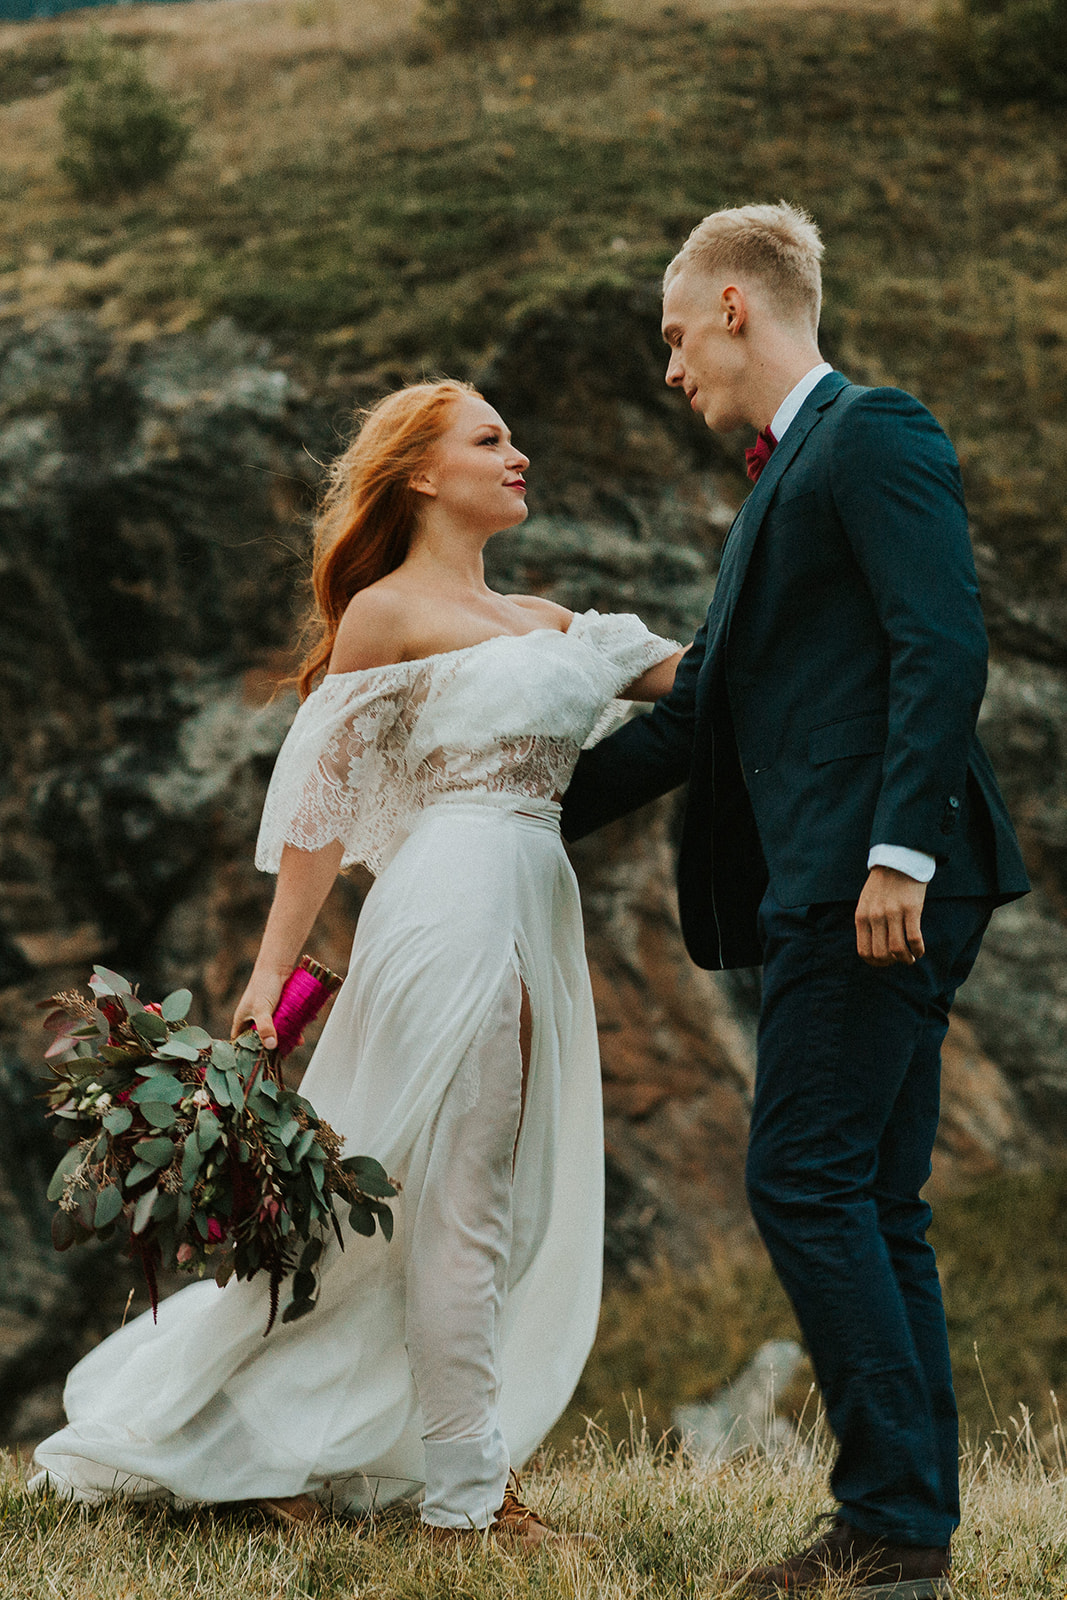 The Epic Styled Shoot